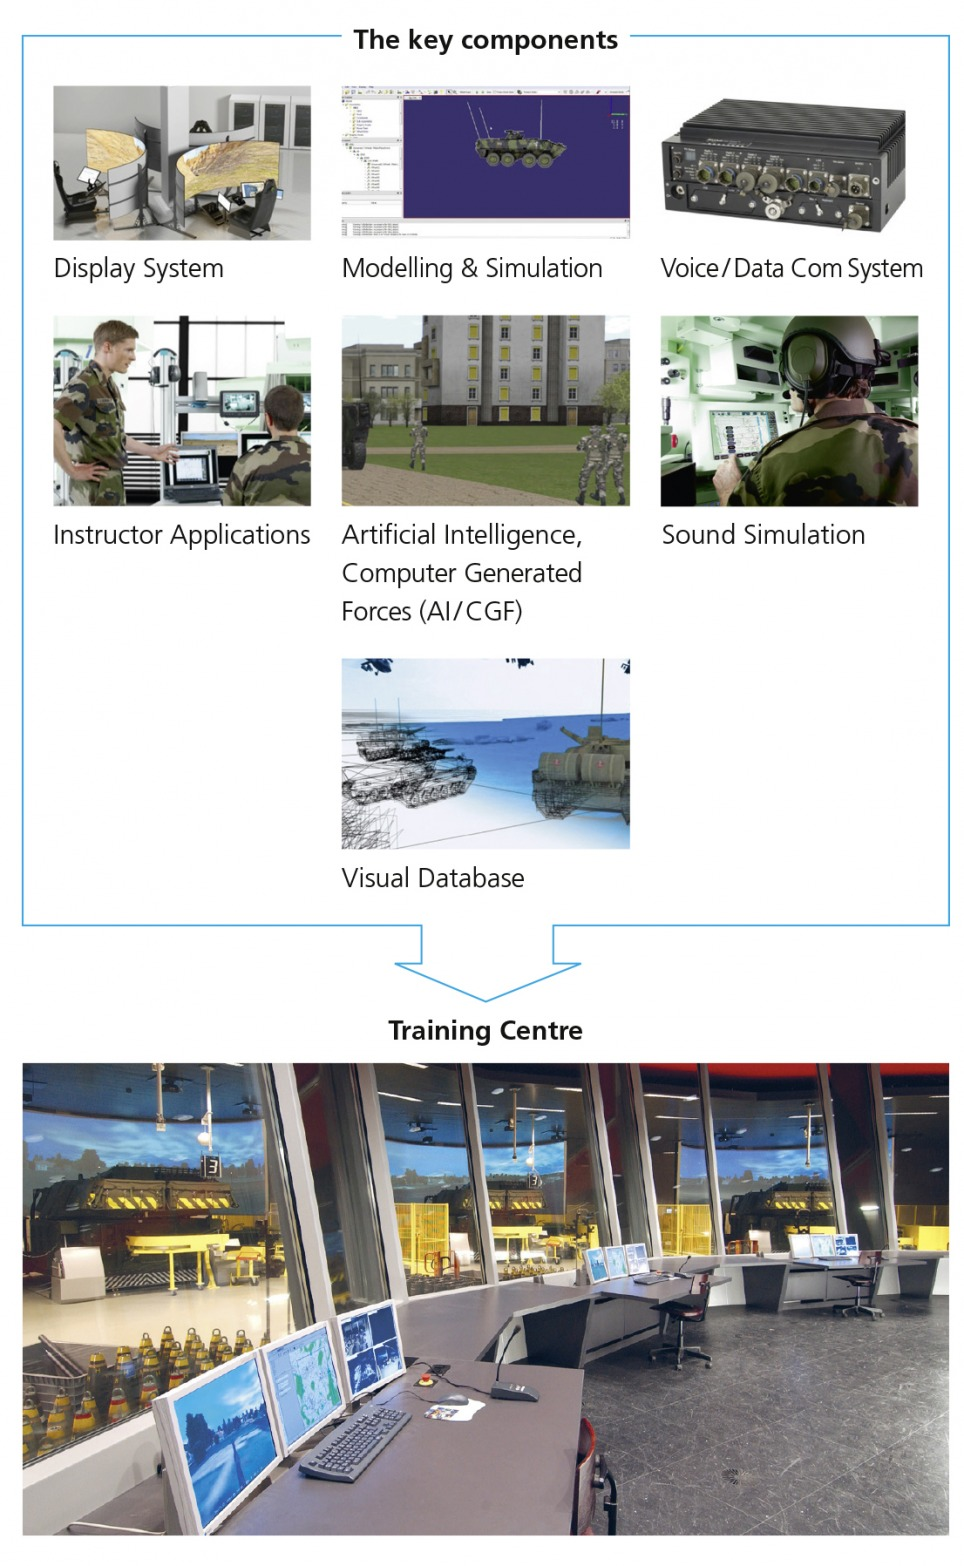 Virtual & Embedded Simulation Centres